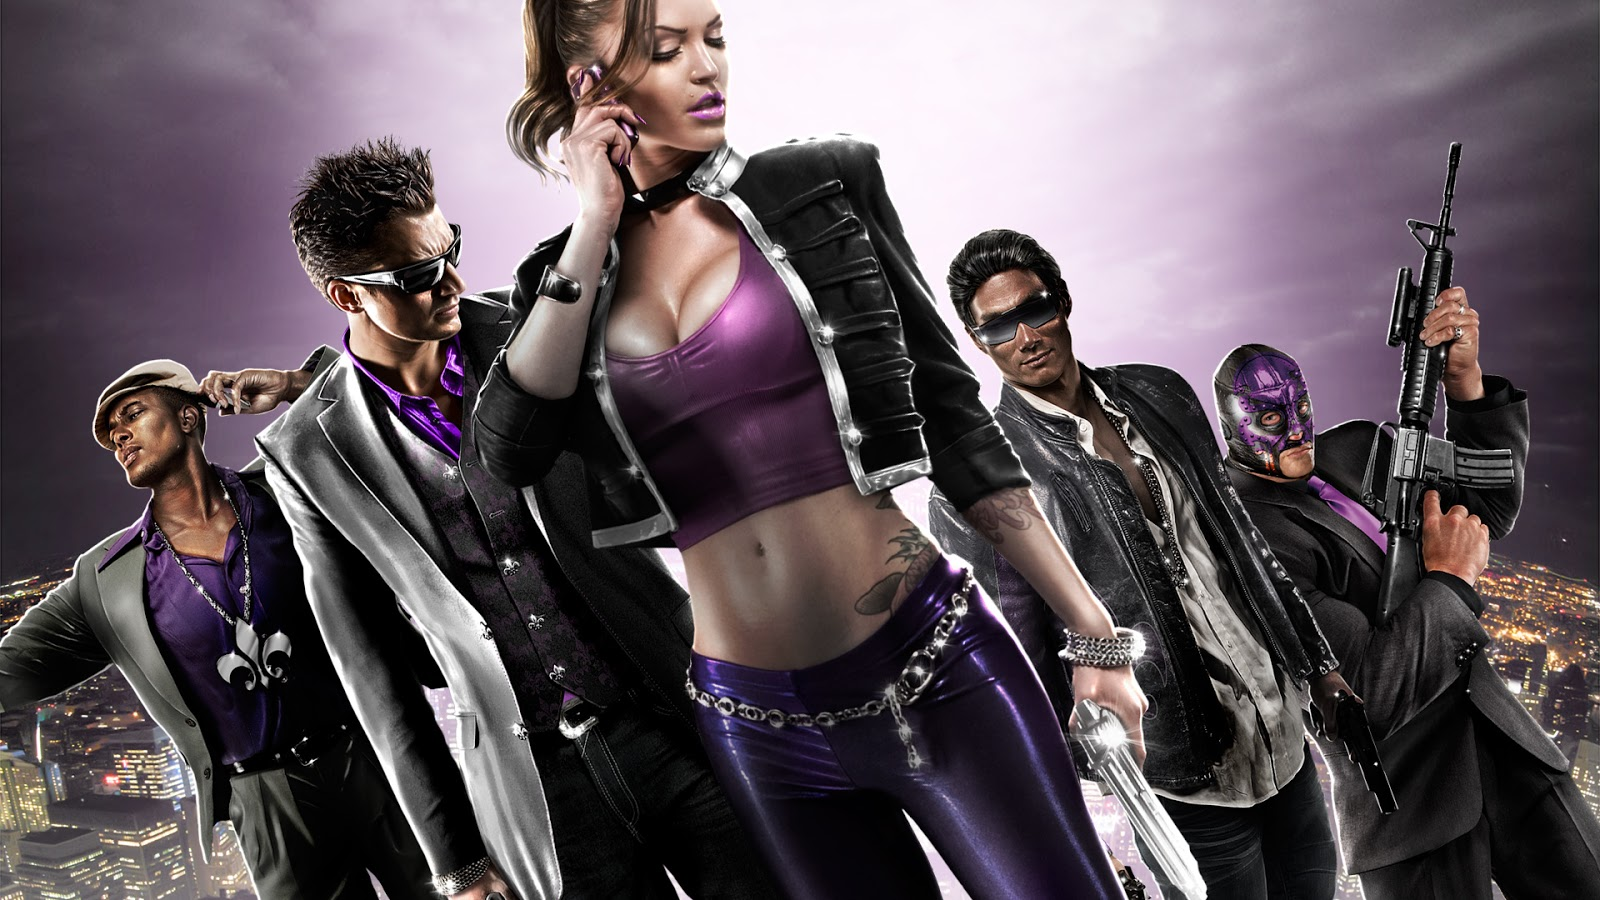 Saint's Row 4 T-shirts, jackets, hoodies coming soon